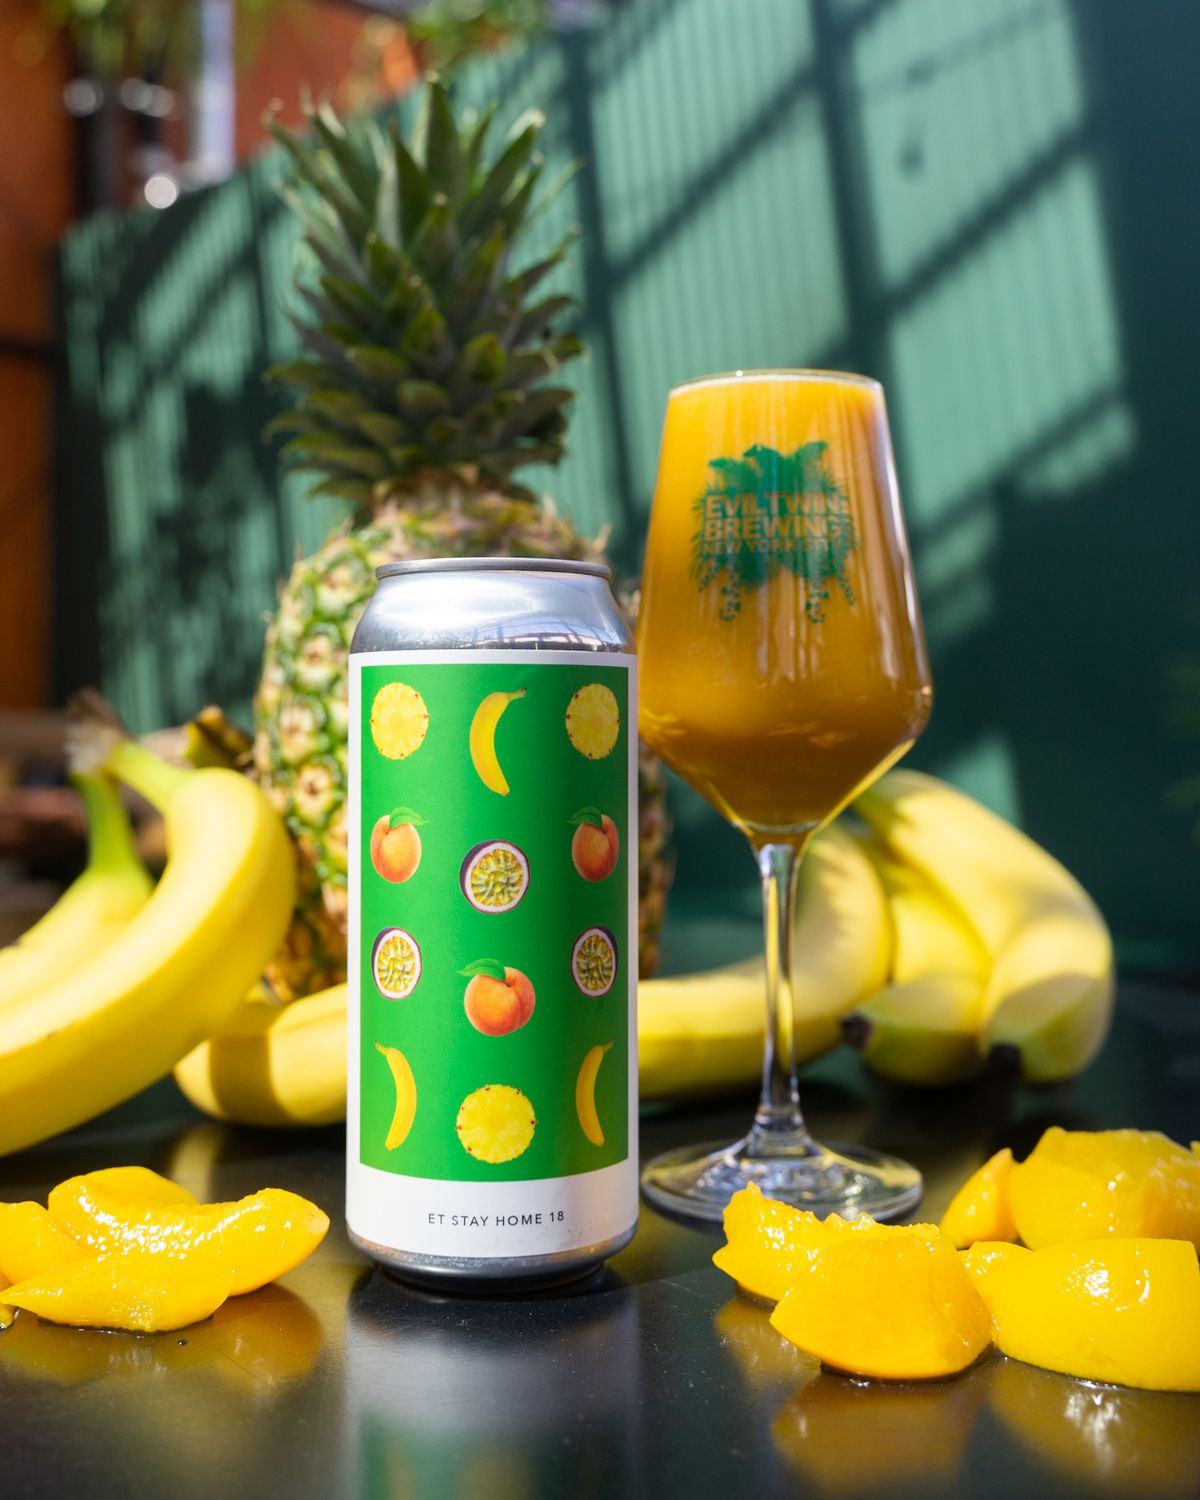 A colorful green and yellow beer stands on a table against a backdrop of bananas and pineapple